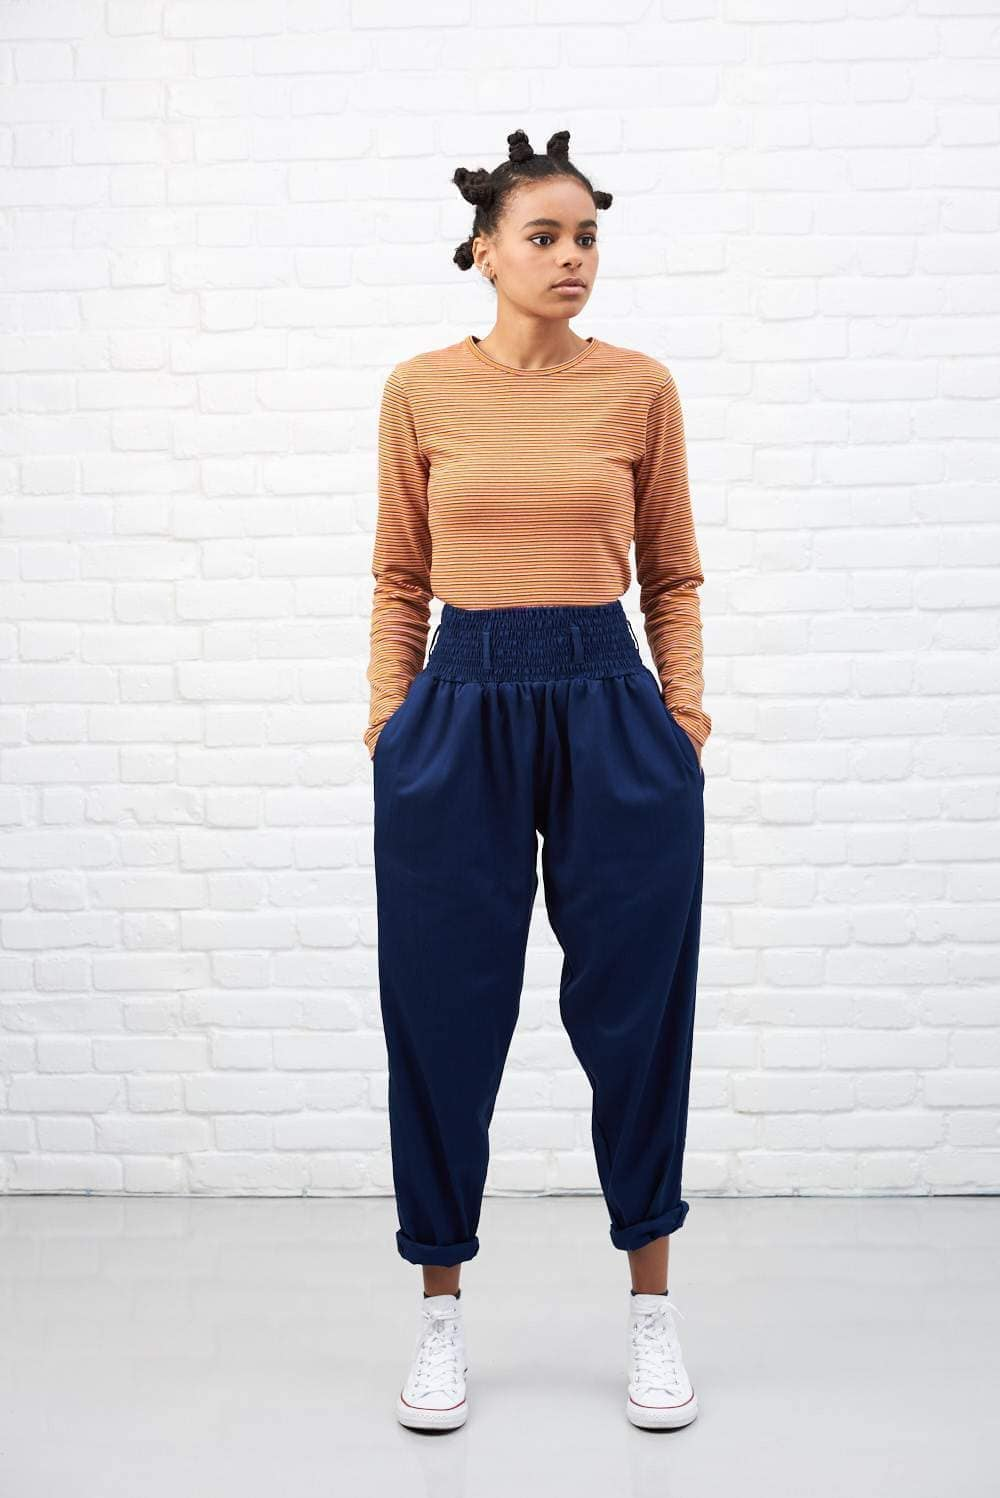 Lucy & Yak cotton trousers 'Organic Alexa' in Ink Blue High Waisted Trousers